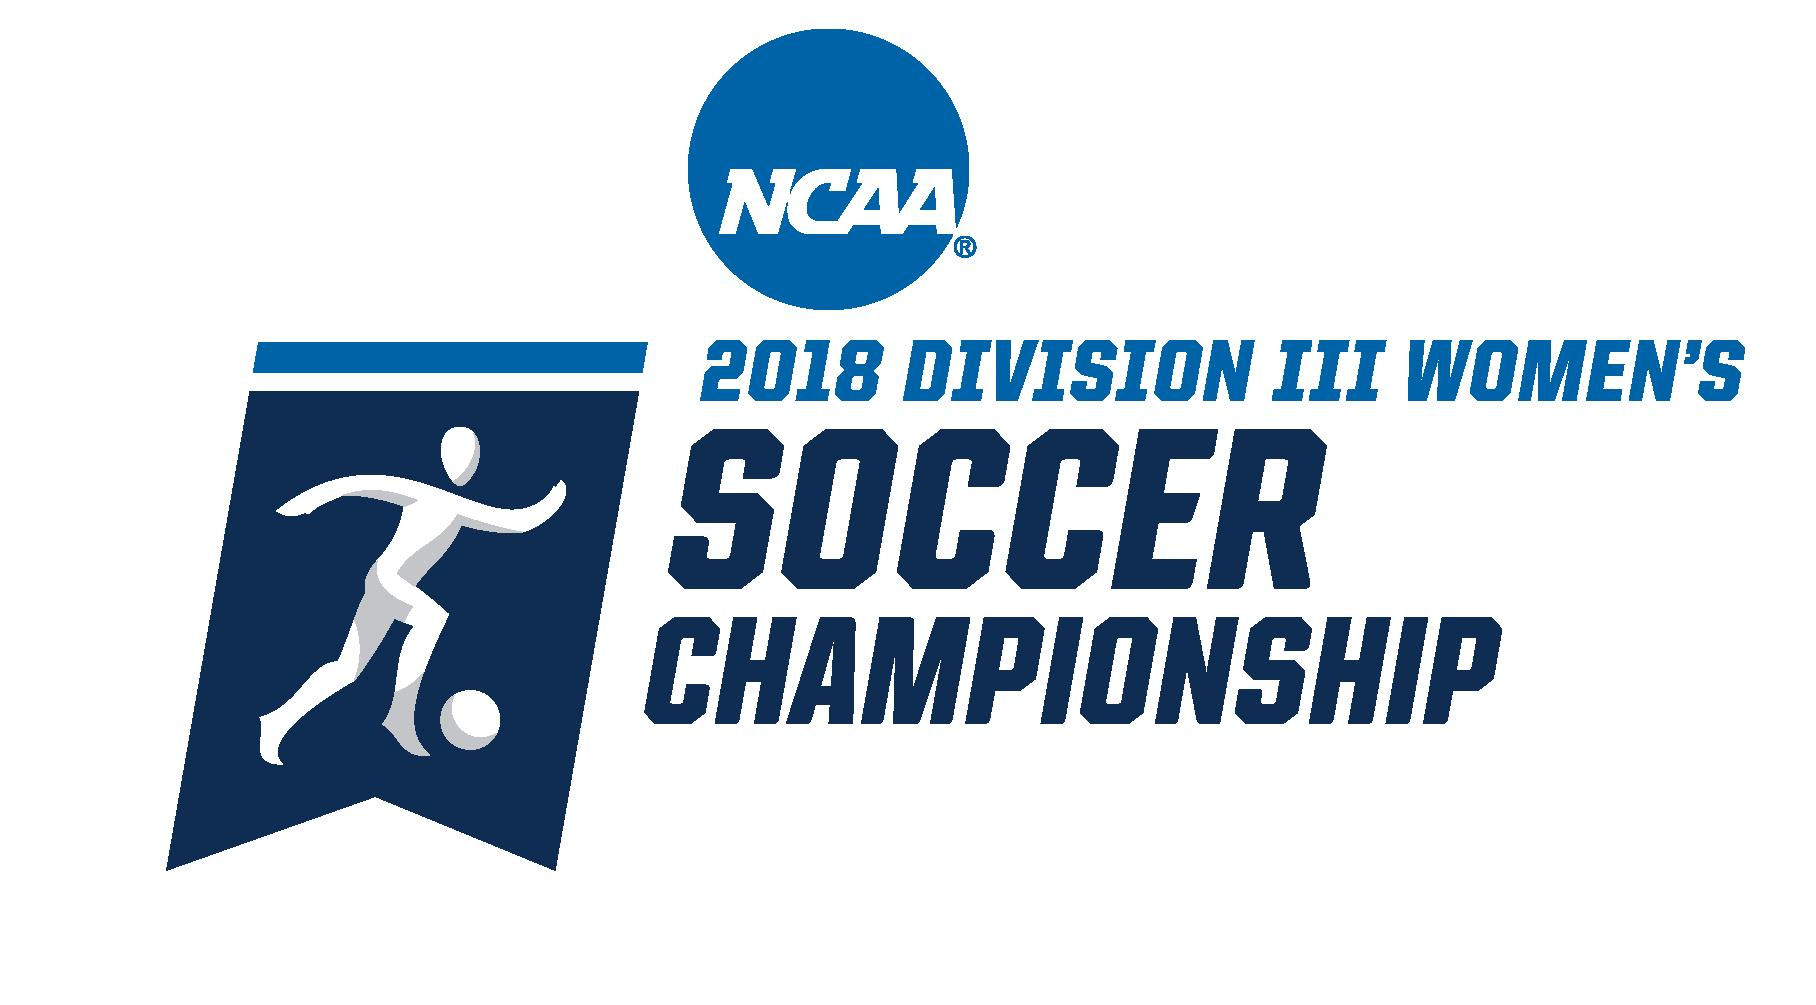 NCAA Division III Women's Soccer Tournament logo